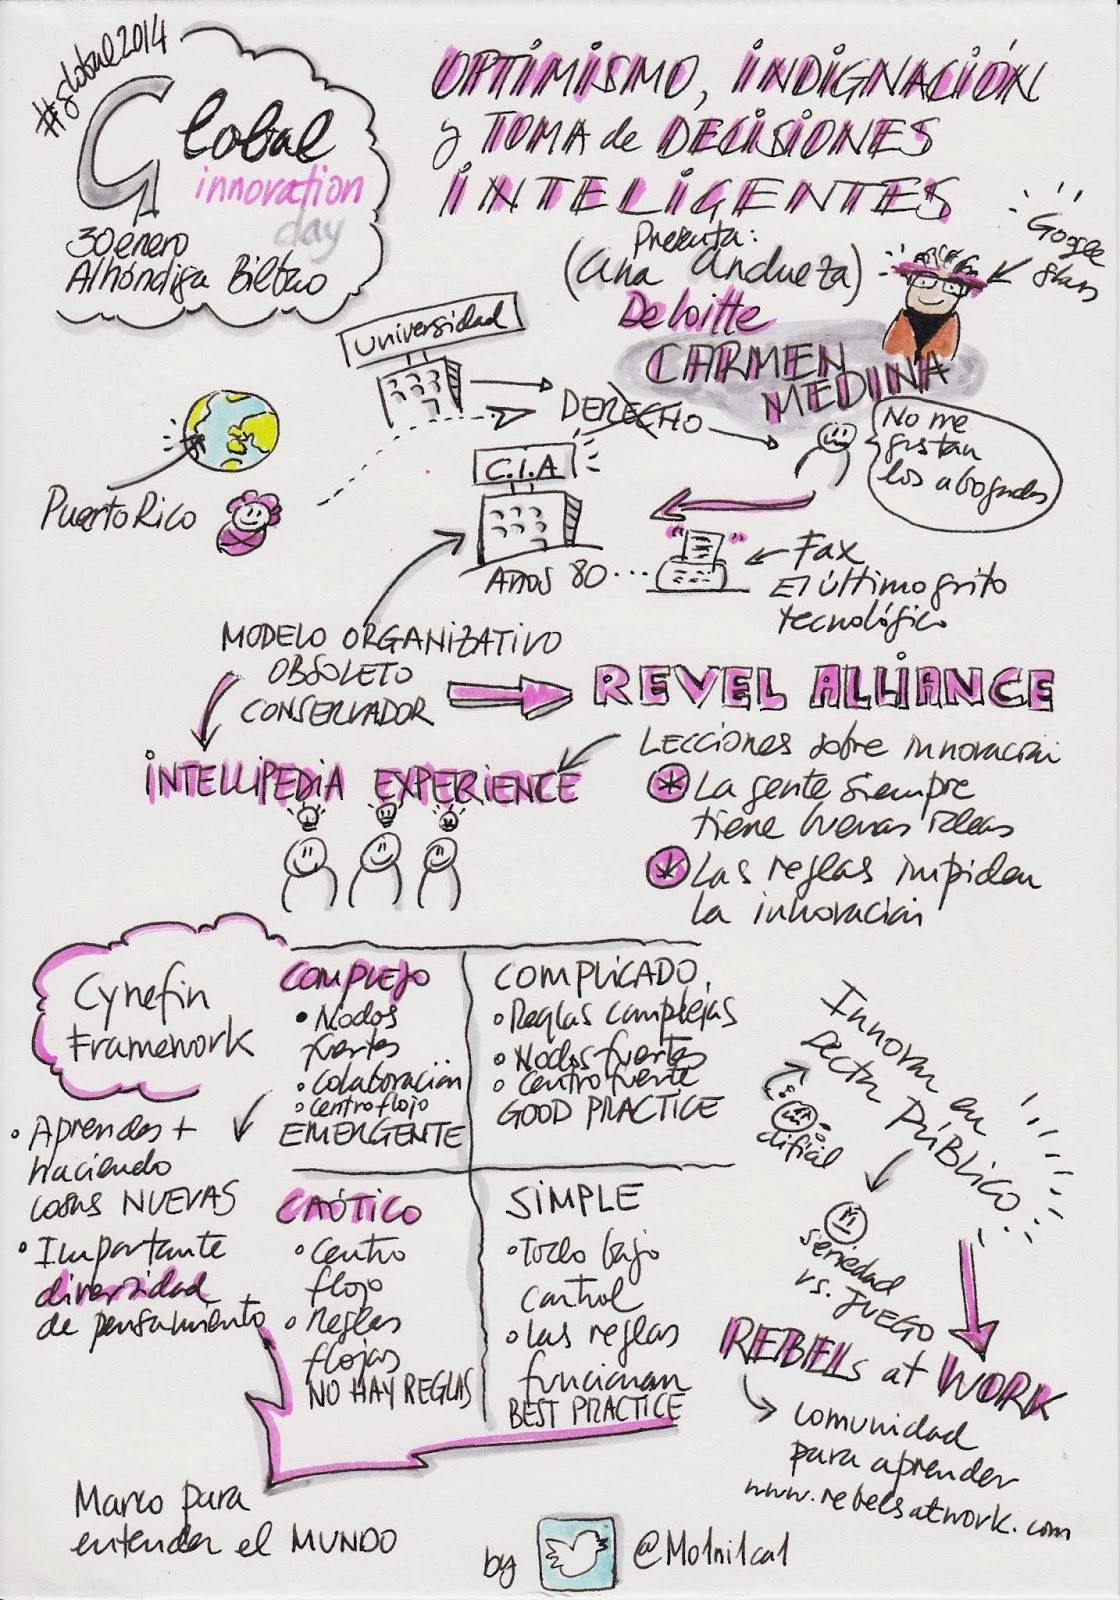 sketchnote global innovation day 2014